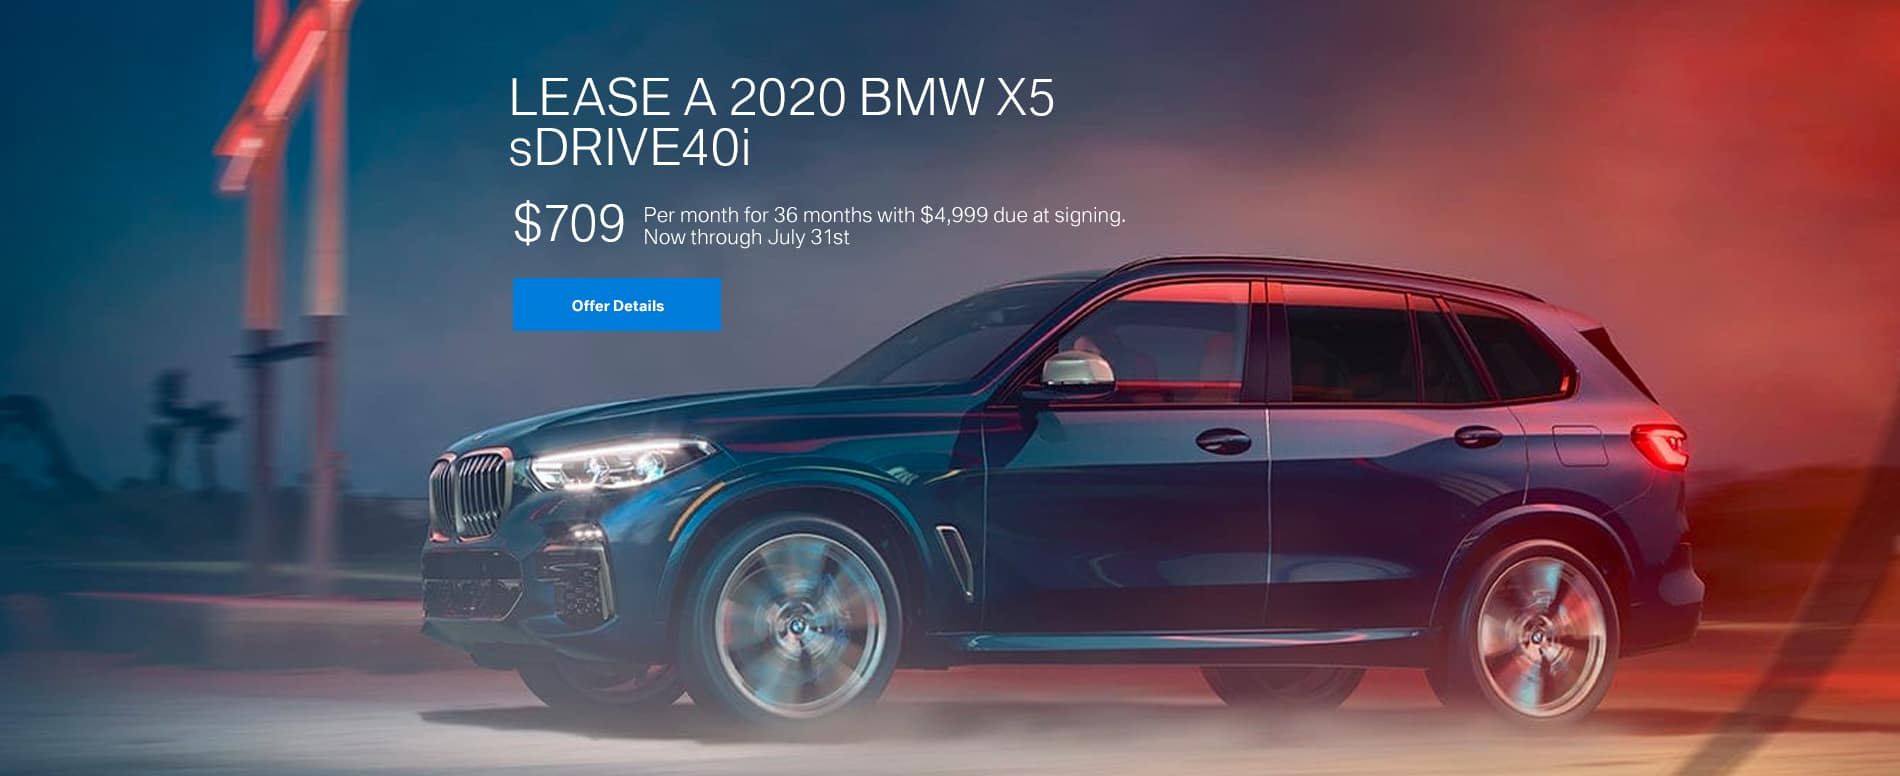 Lease a 2020 BMW X5 sDrive40i at BMW of Fort Walton Beach!